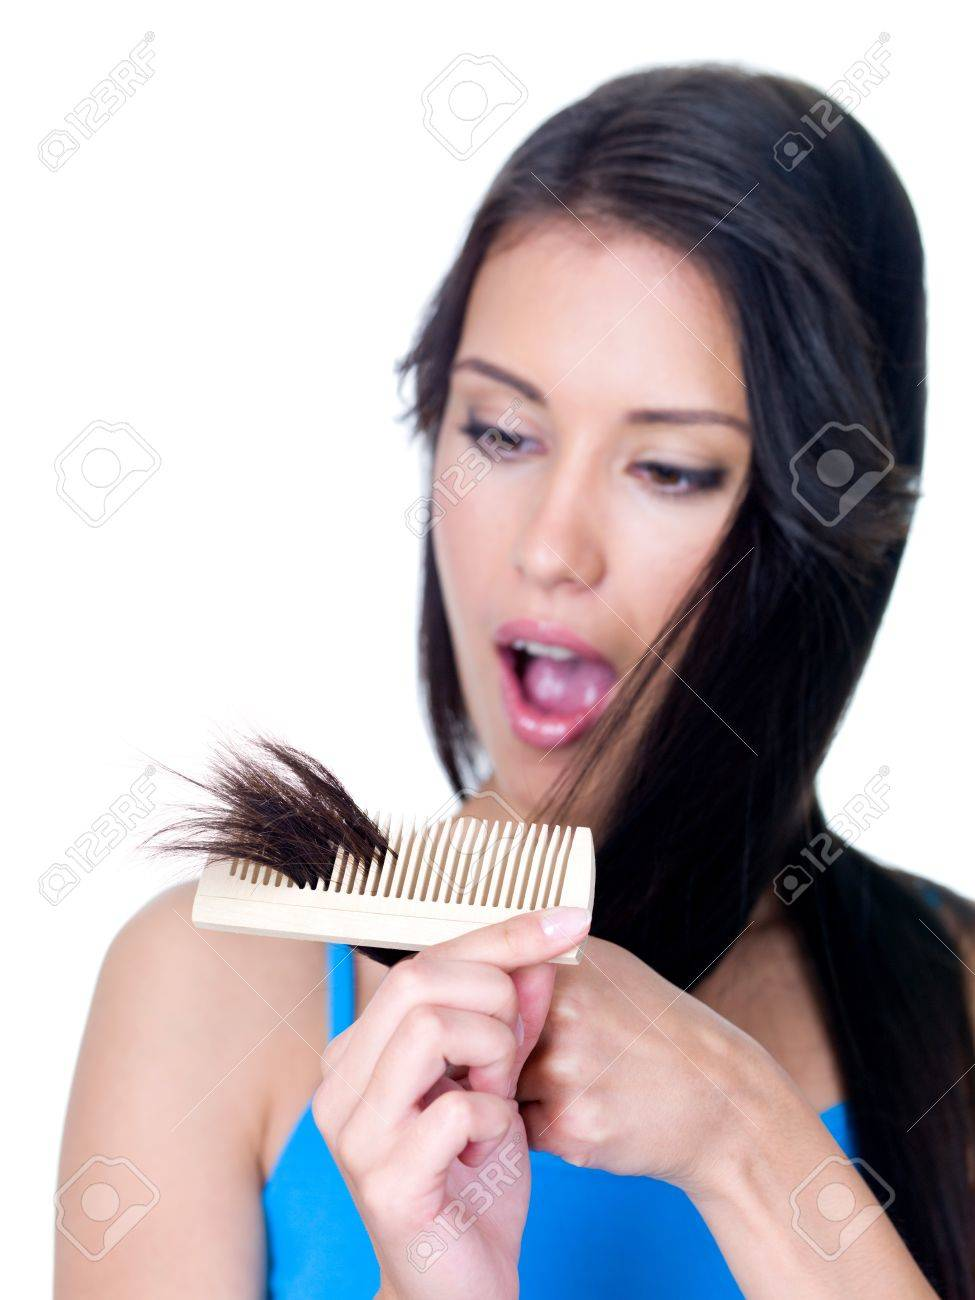 Horror on the face of young woman looking at the unhealthy ends of hair - isolated Stock Photo - 7337581